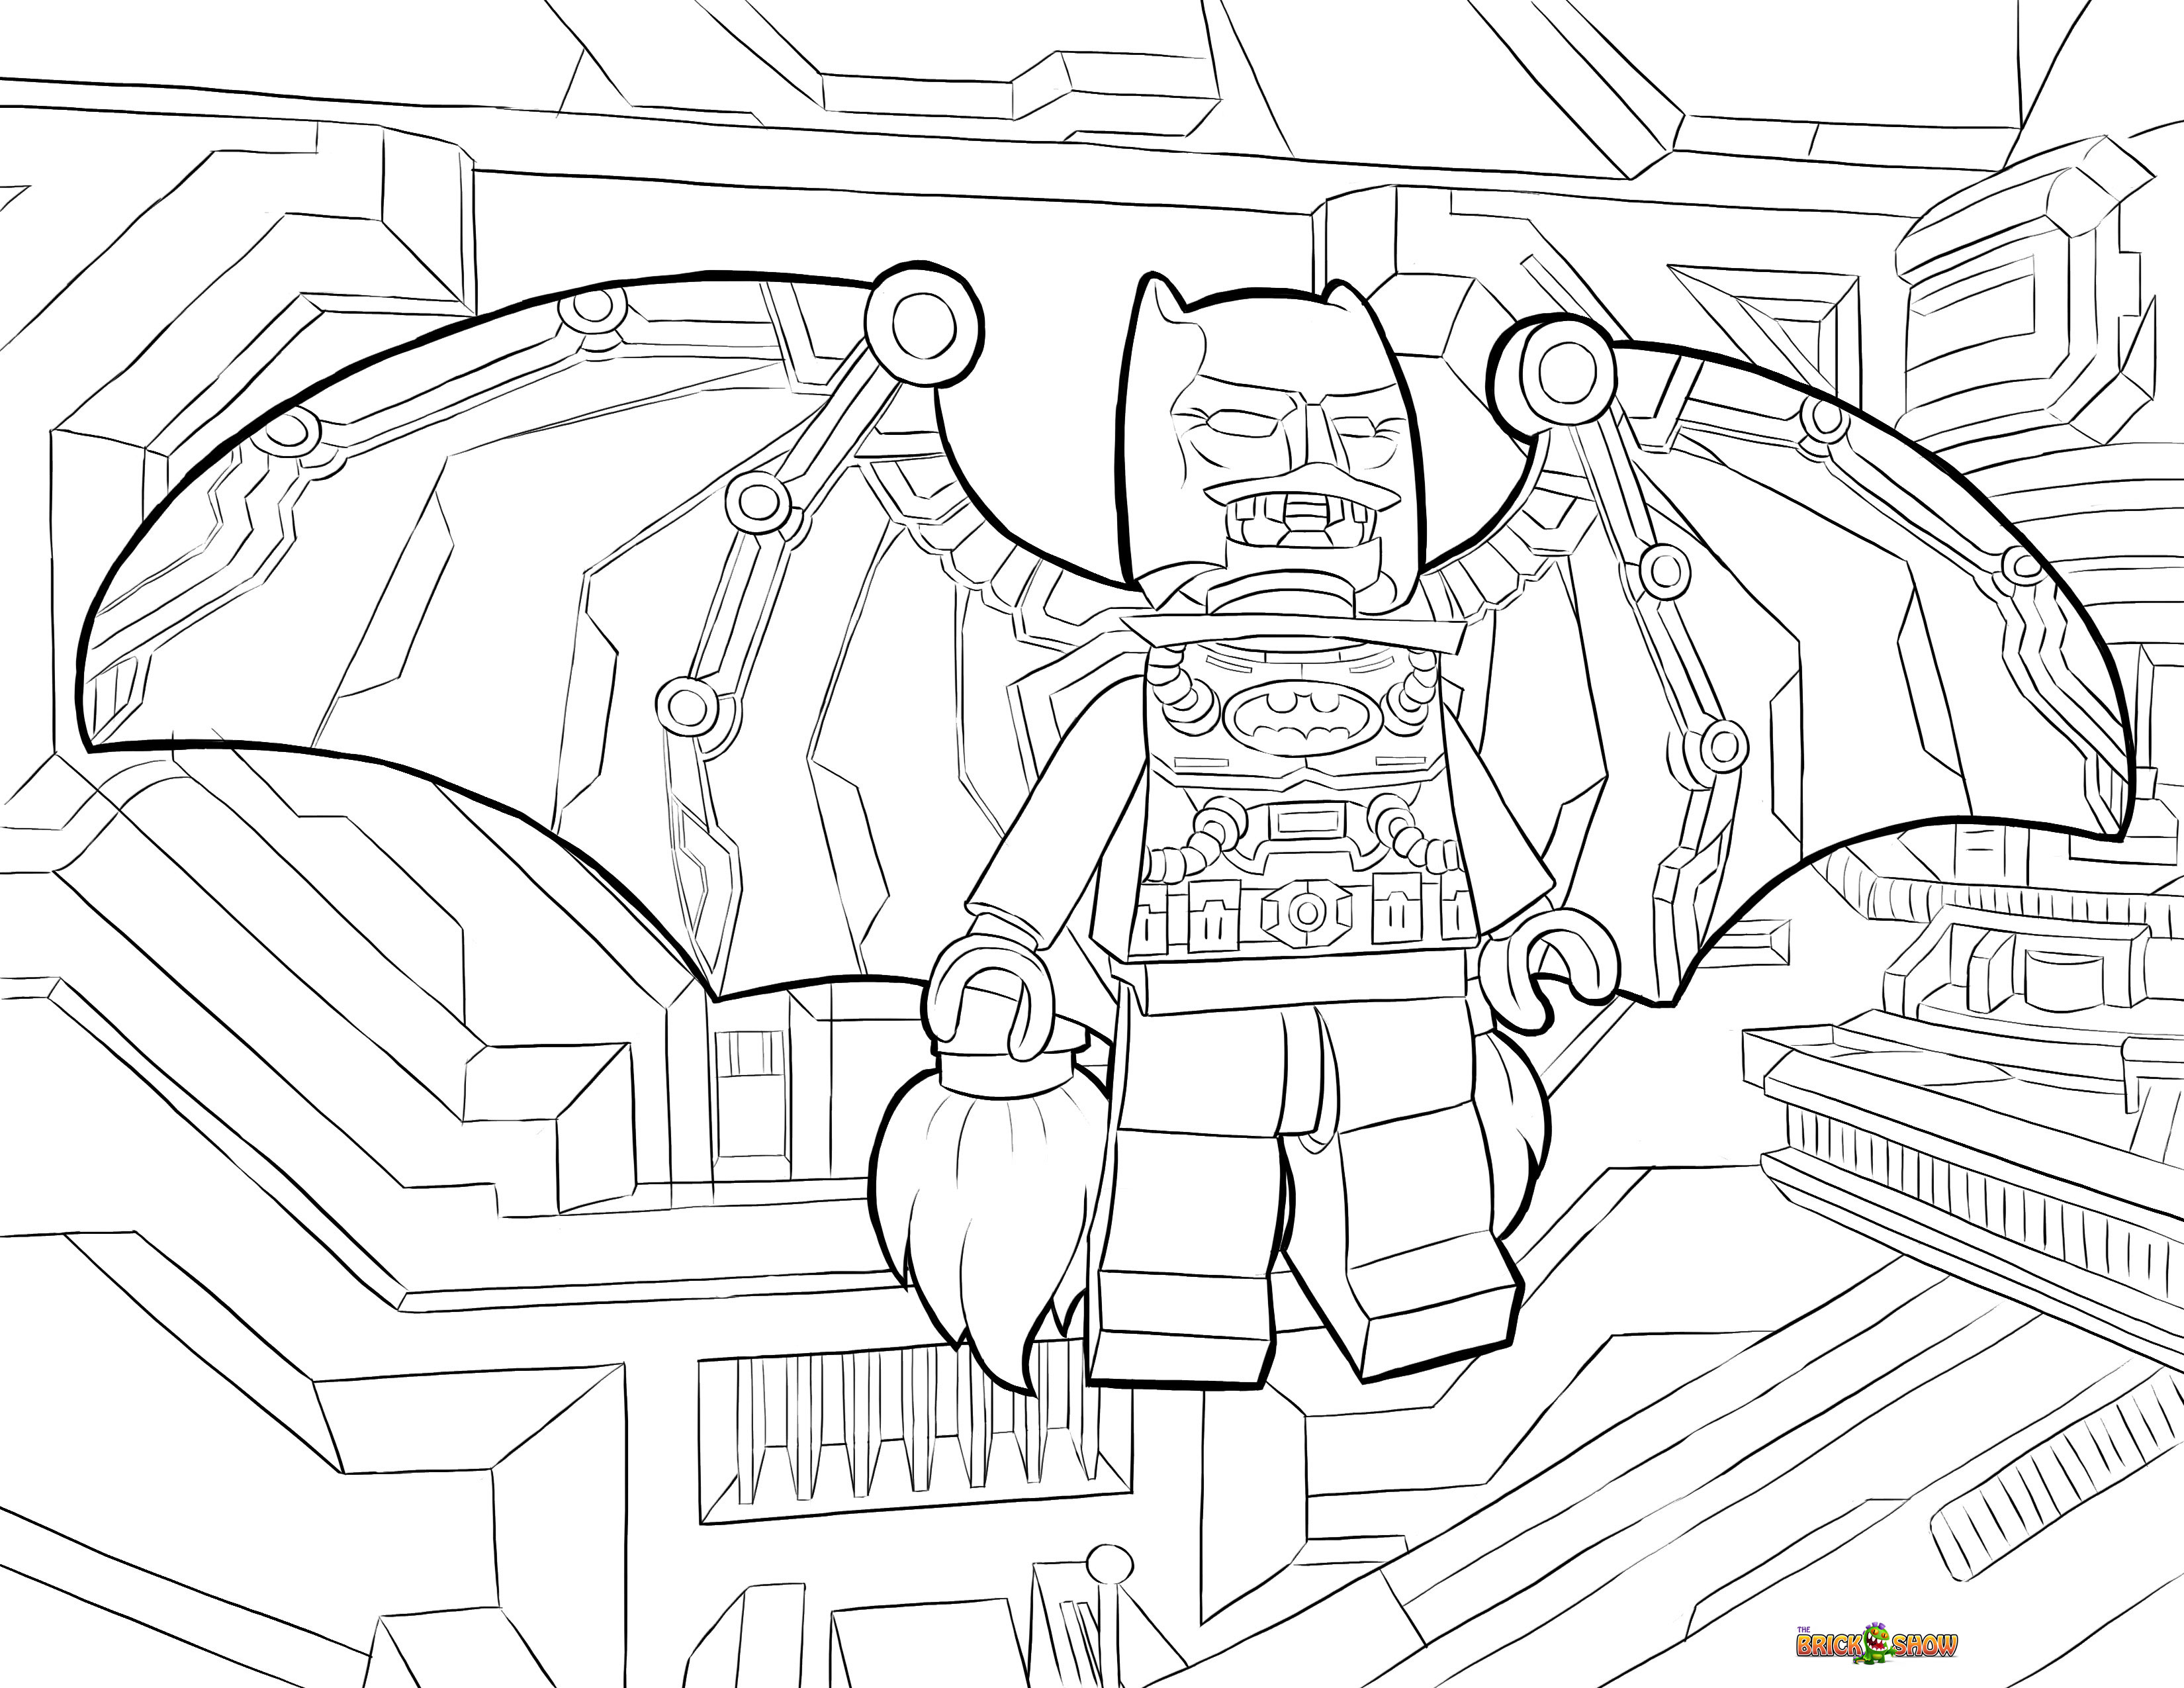 Lego Dimensions Coloring Pages At Getdrawings Free Download